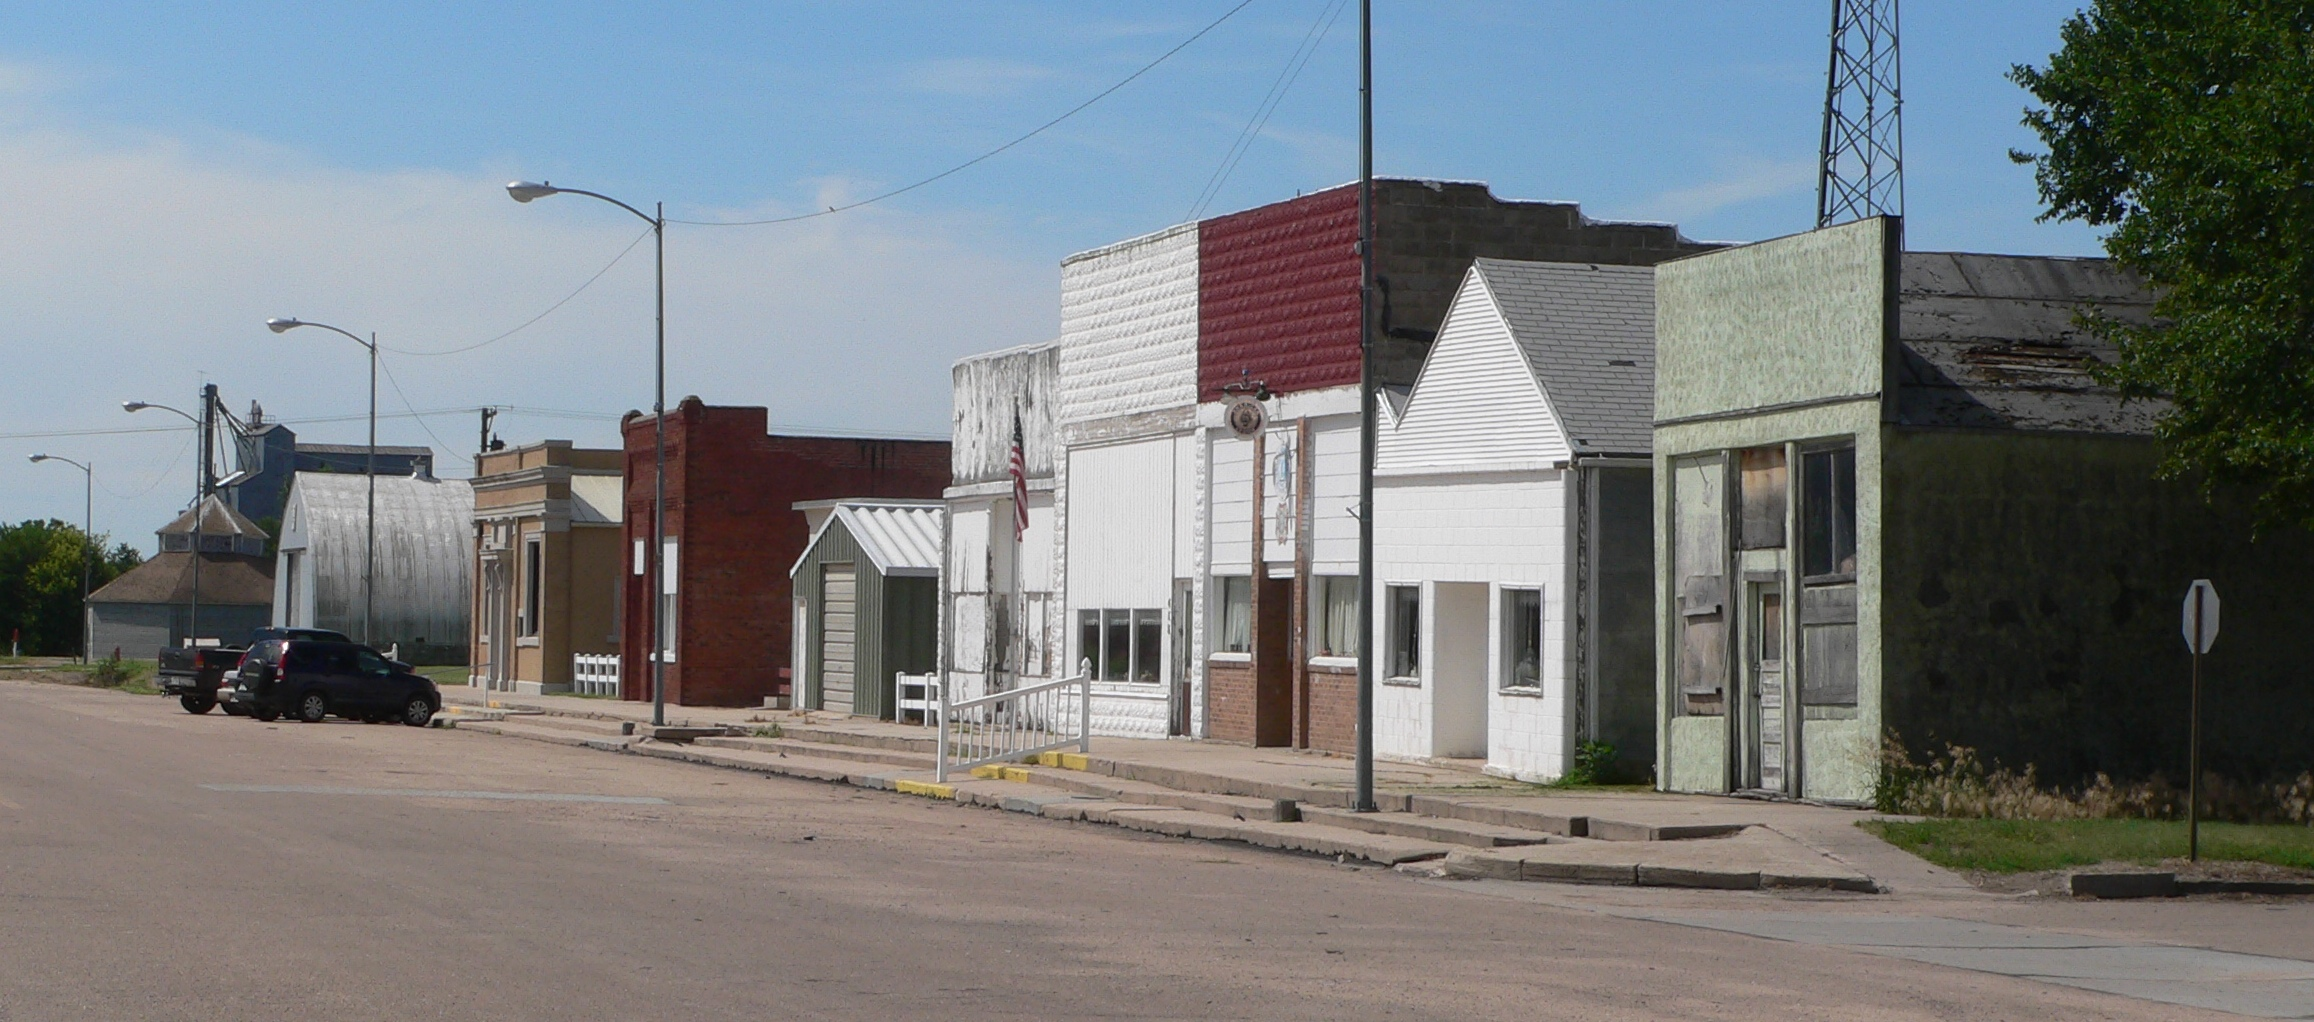 Bartley (Nebraska)